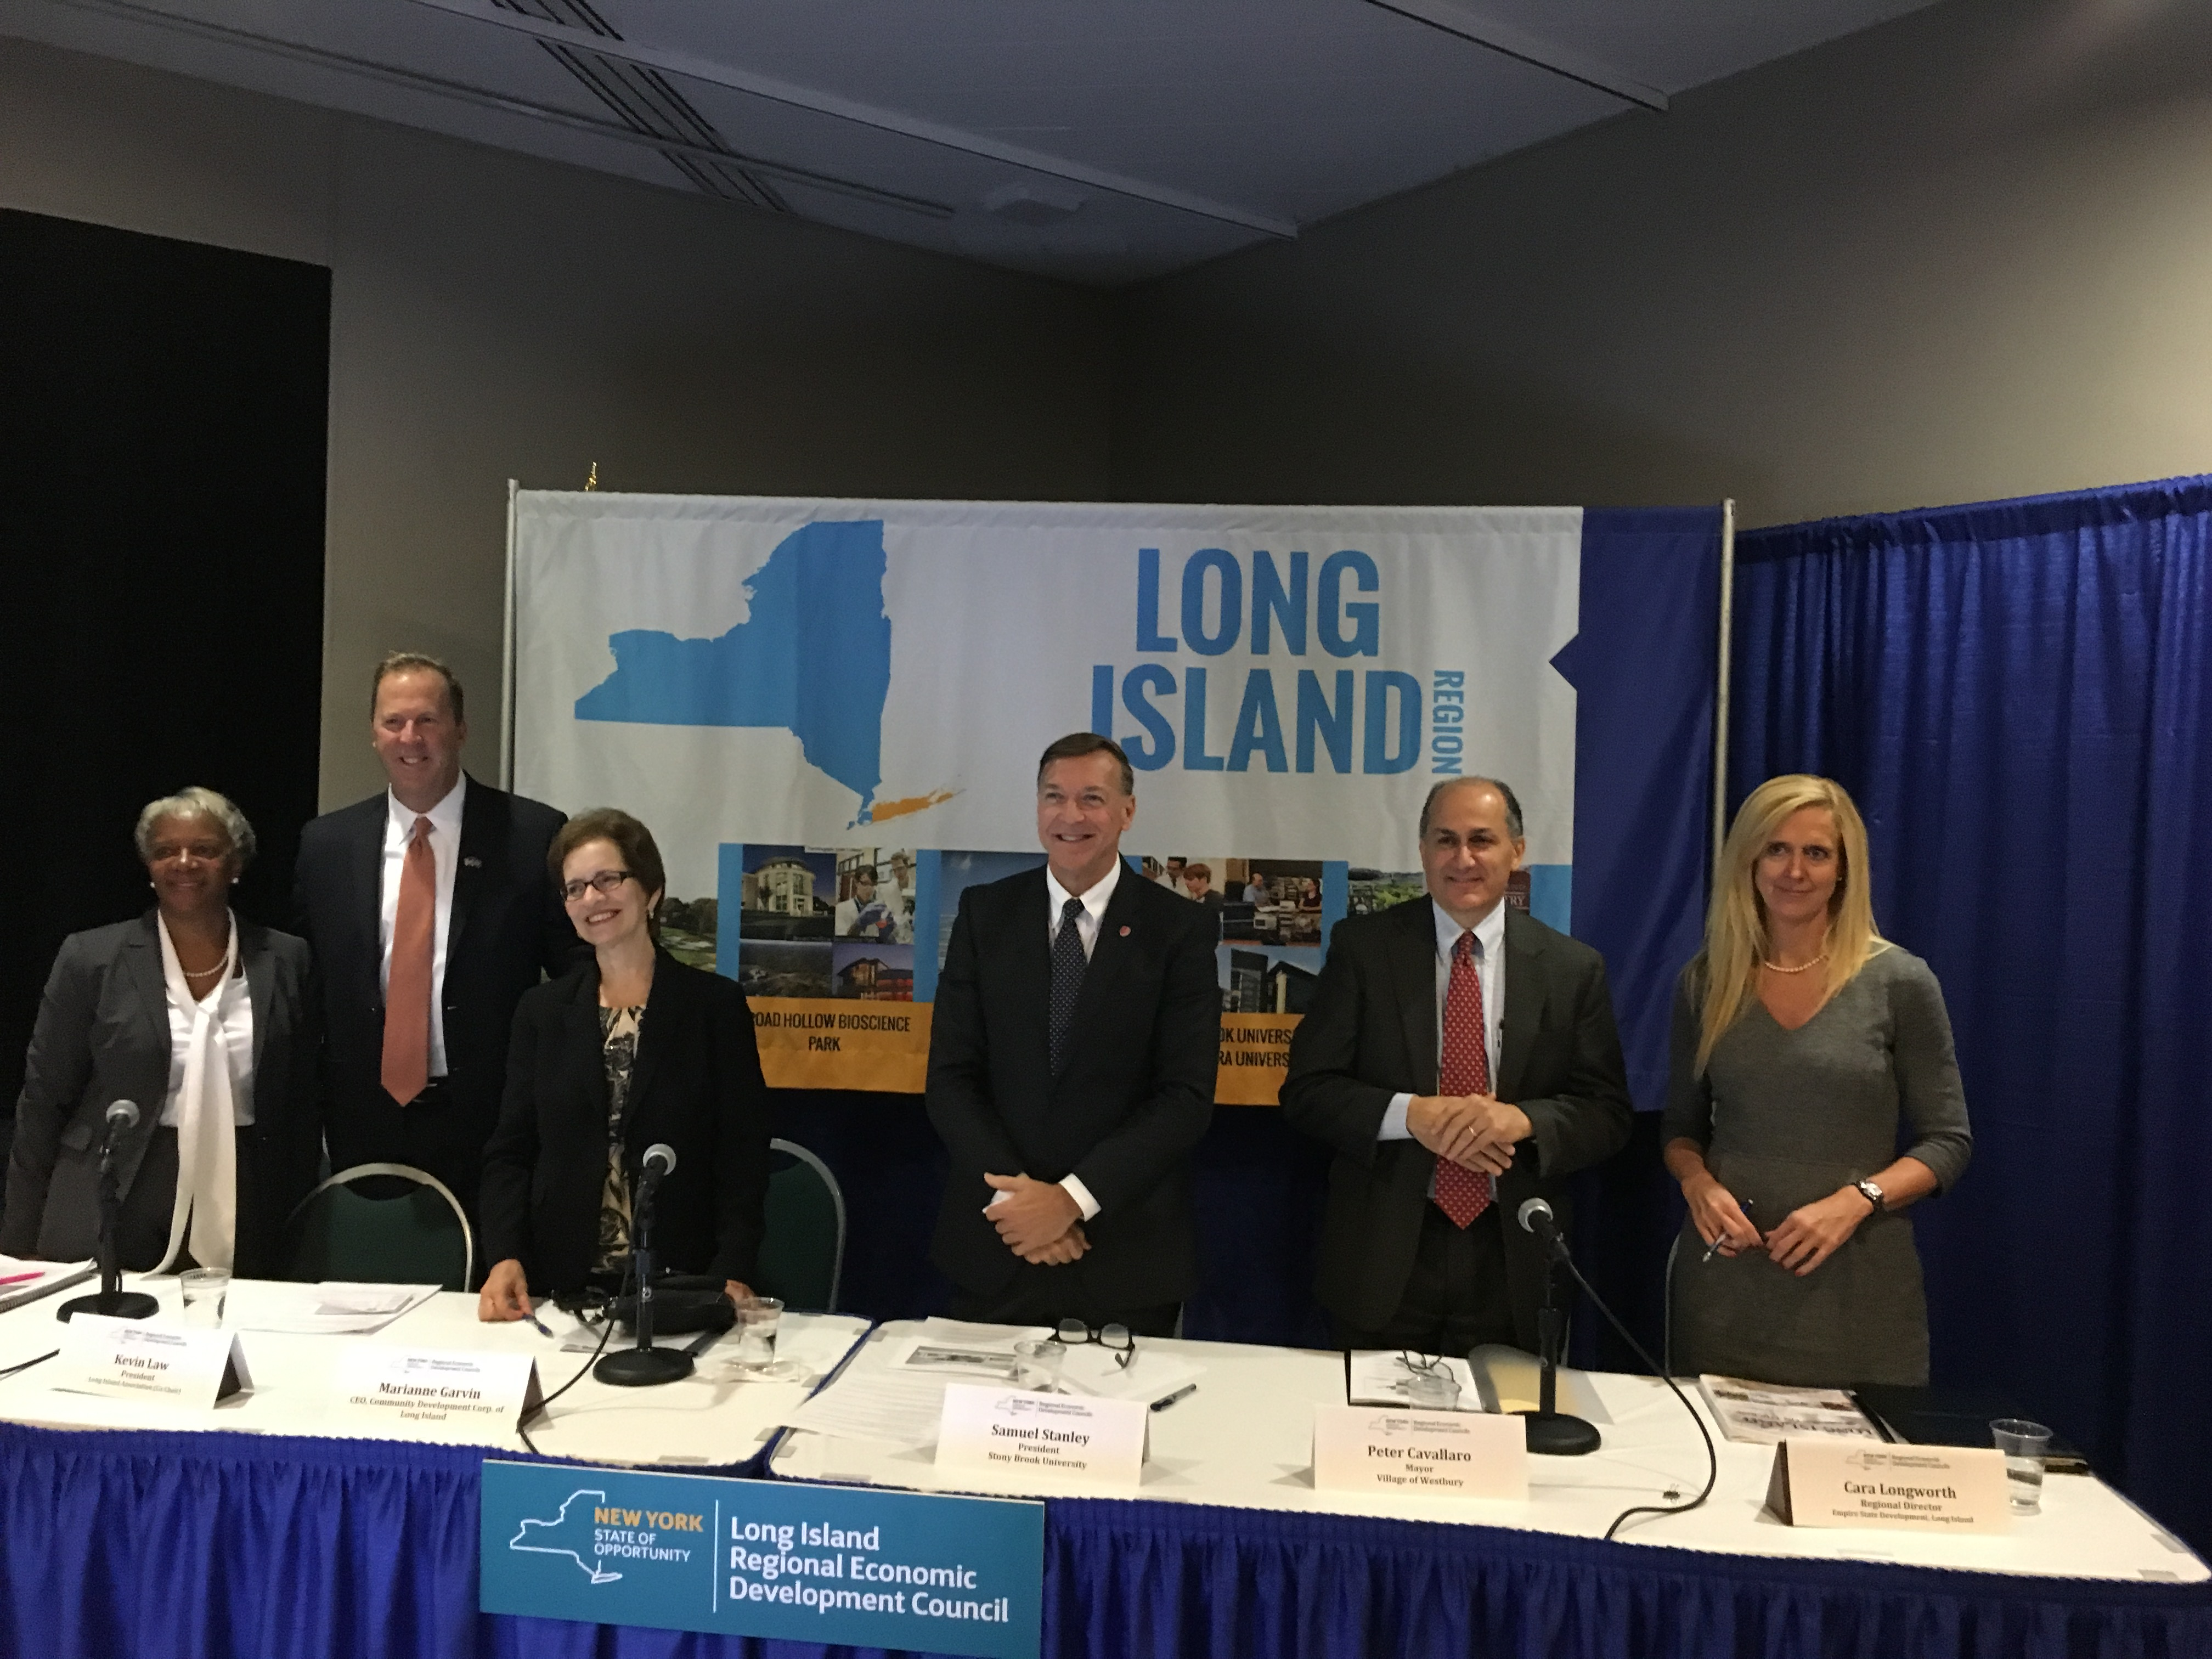 Left to right: LIREDC representatives Patricia Edwards, Kevin Law, Marianne Garvin, and President Stanley, with Peter Cavallaro and Cara Longworth.